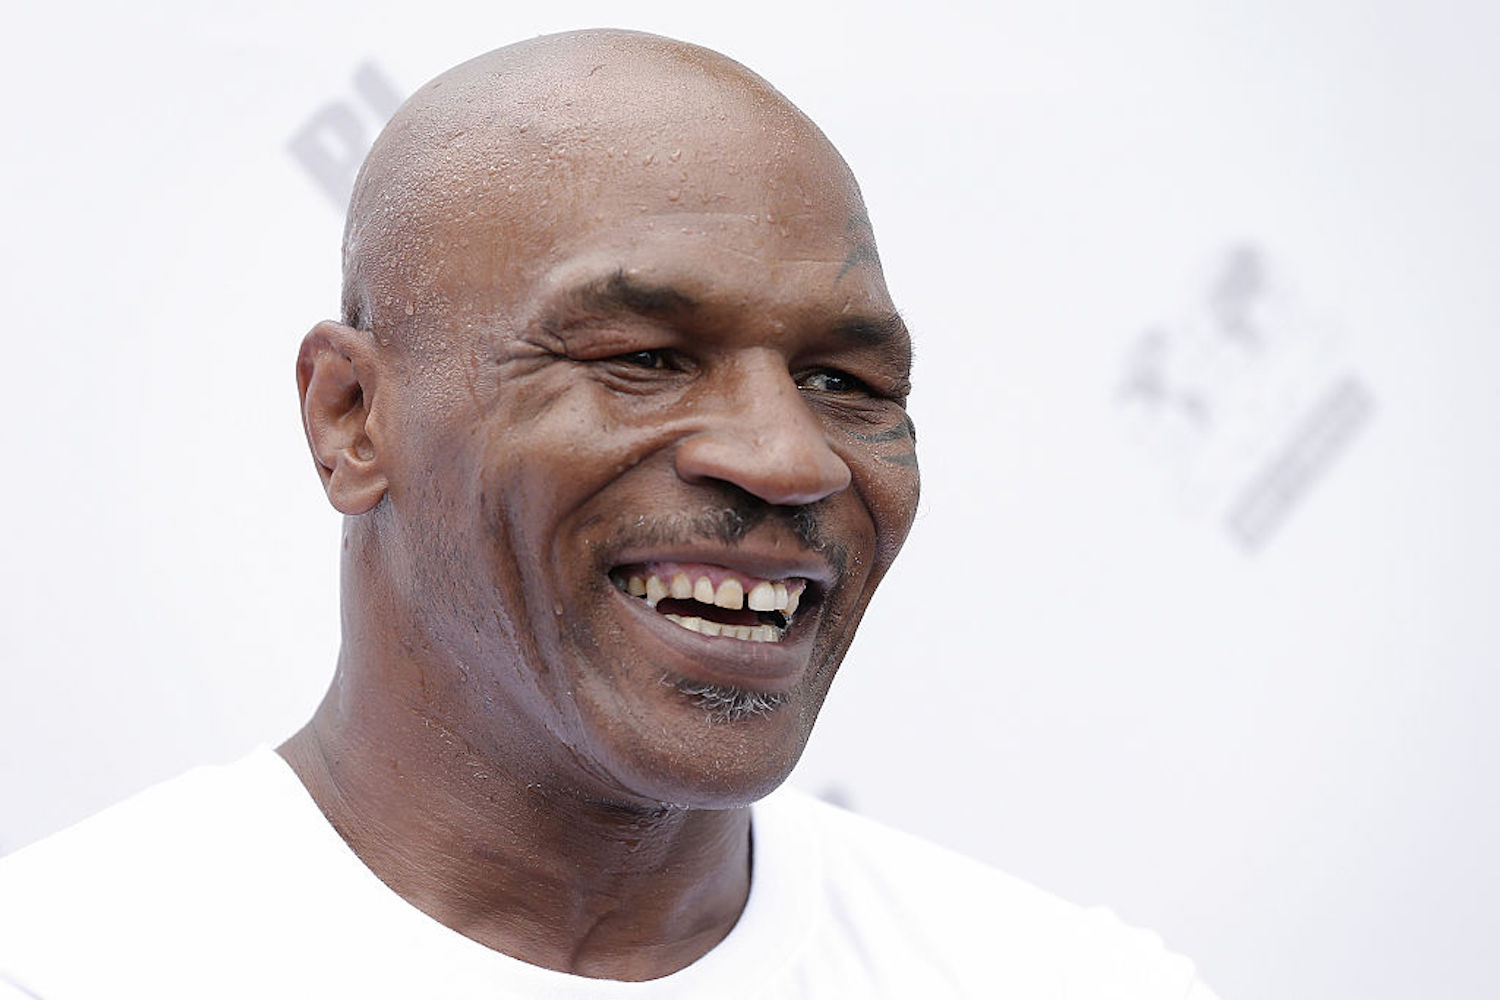 Mike Tyson has been training ferociously to return to the ring, and he just made the announcement boxing fans have been waiting for.